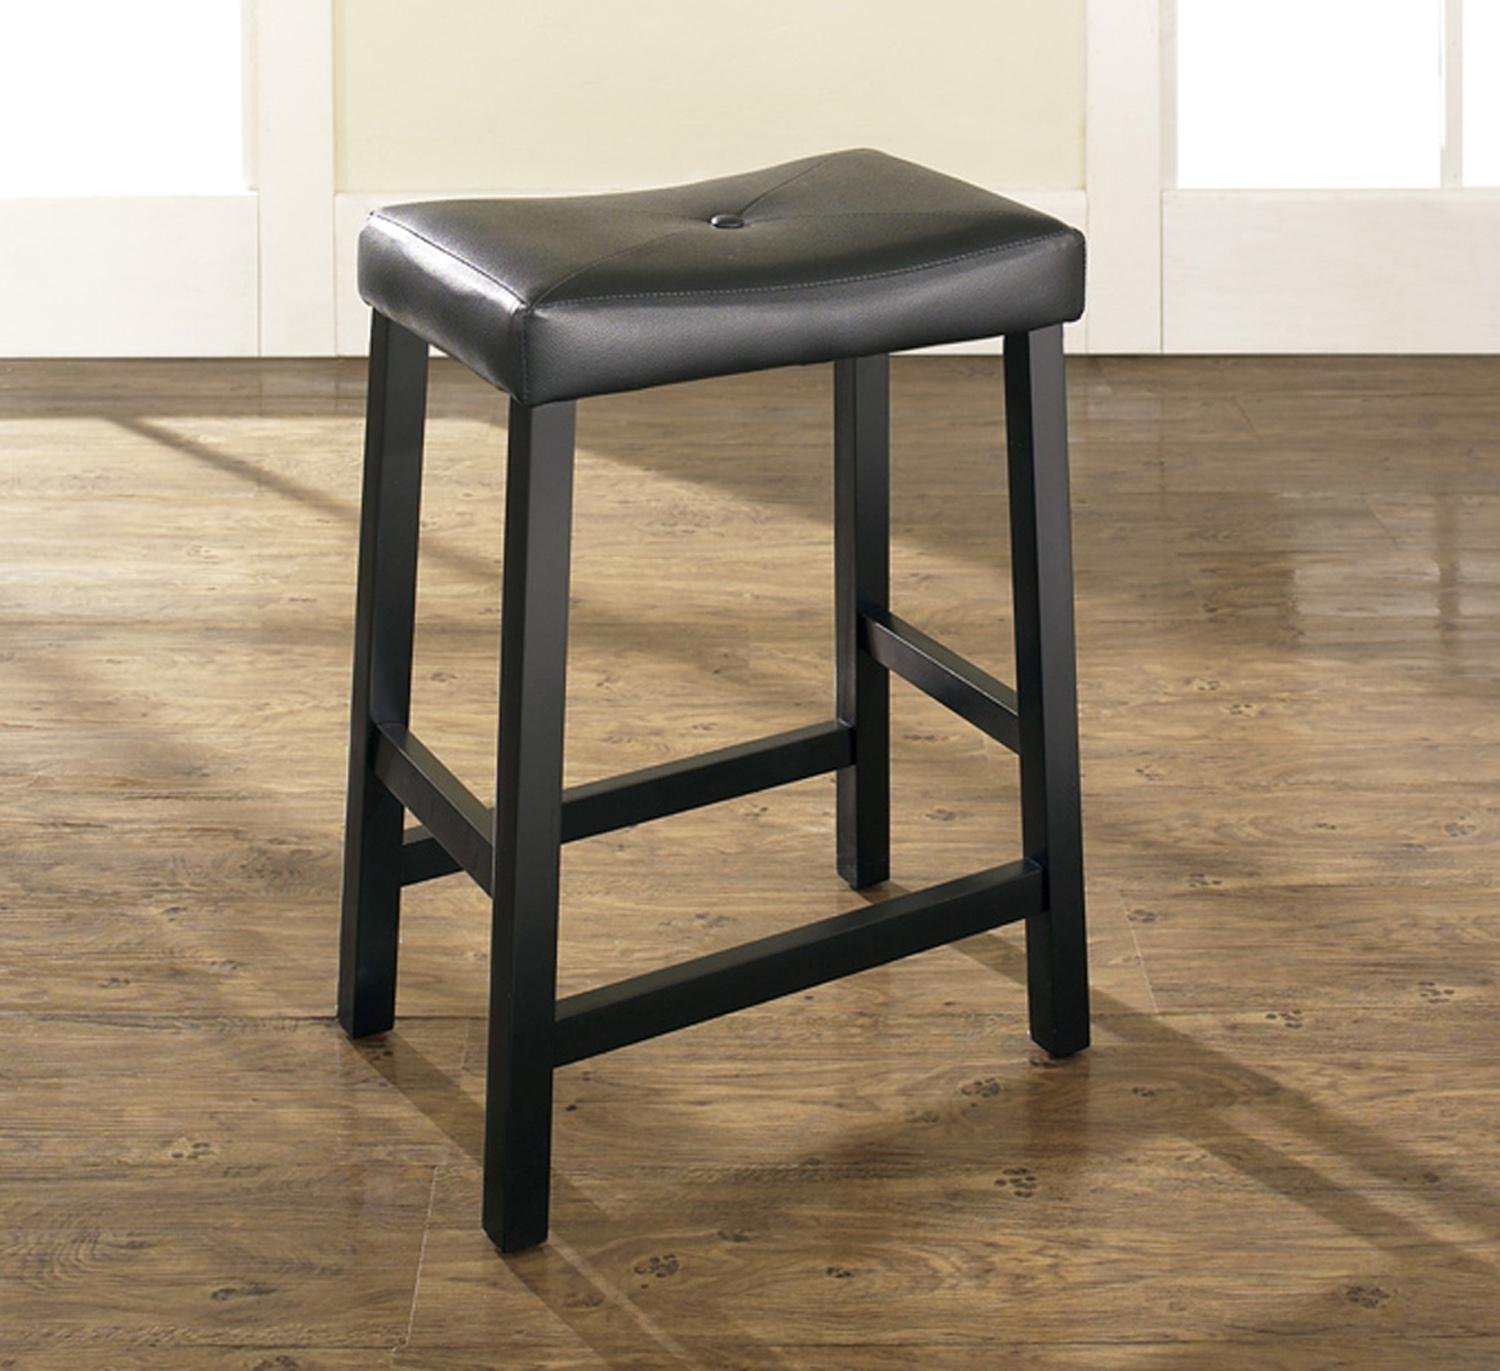 Crosley Upholstered Saddle Seat Bar Stool Cf500224 Bk